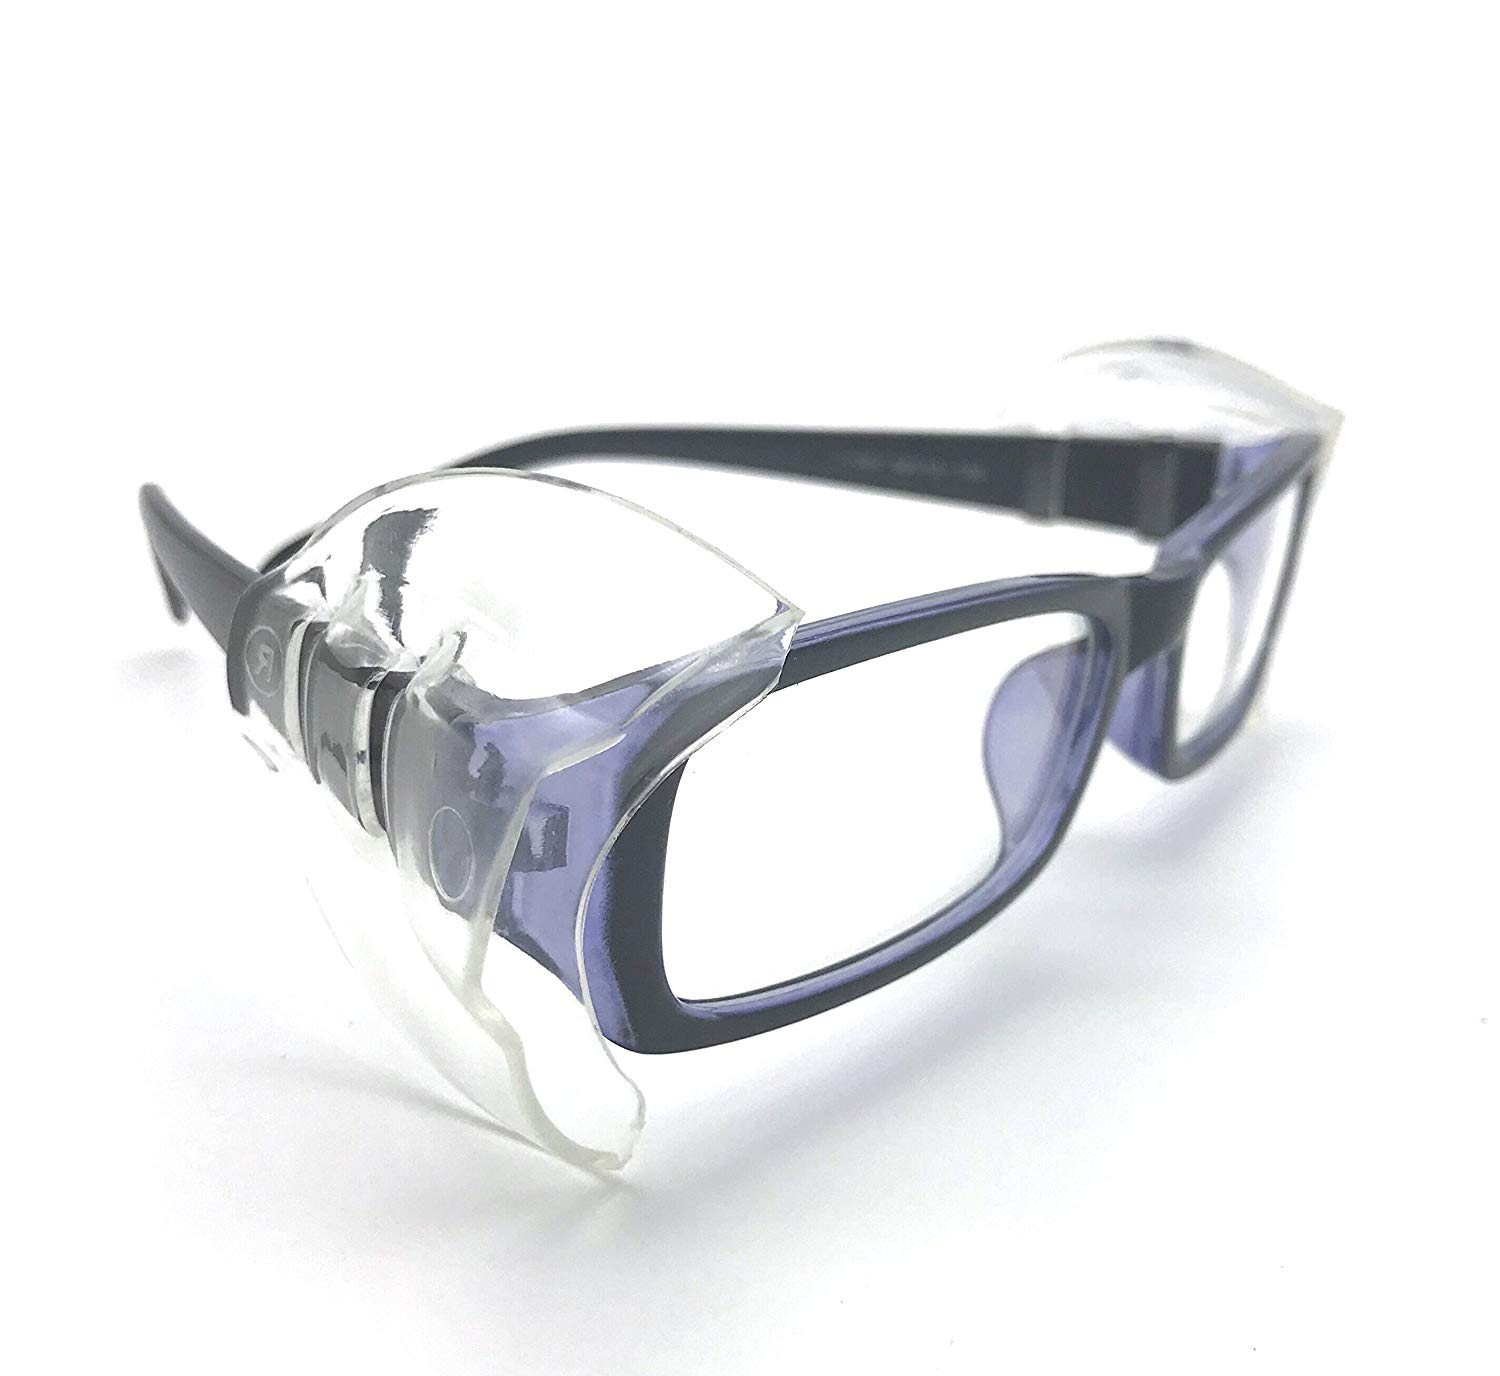 372ac6d0d2 Get Quotations · Wakaka 4 Pcs Small to Medium Eye glasses Safety Glasses  Side Shields Side shields for safety